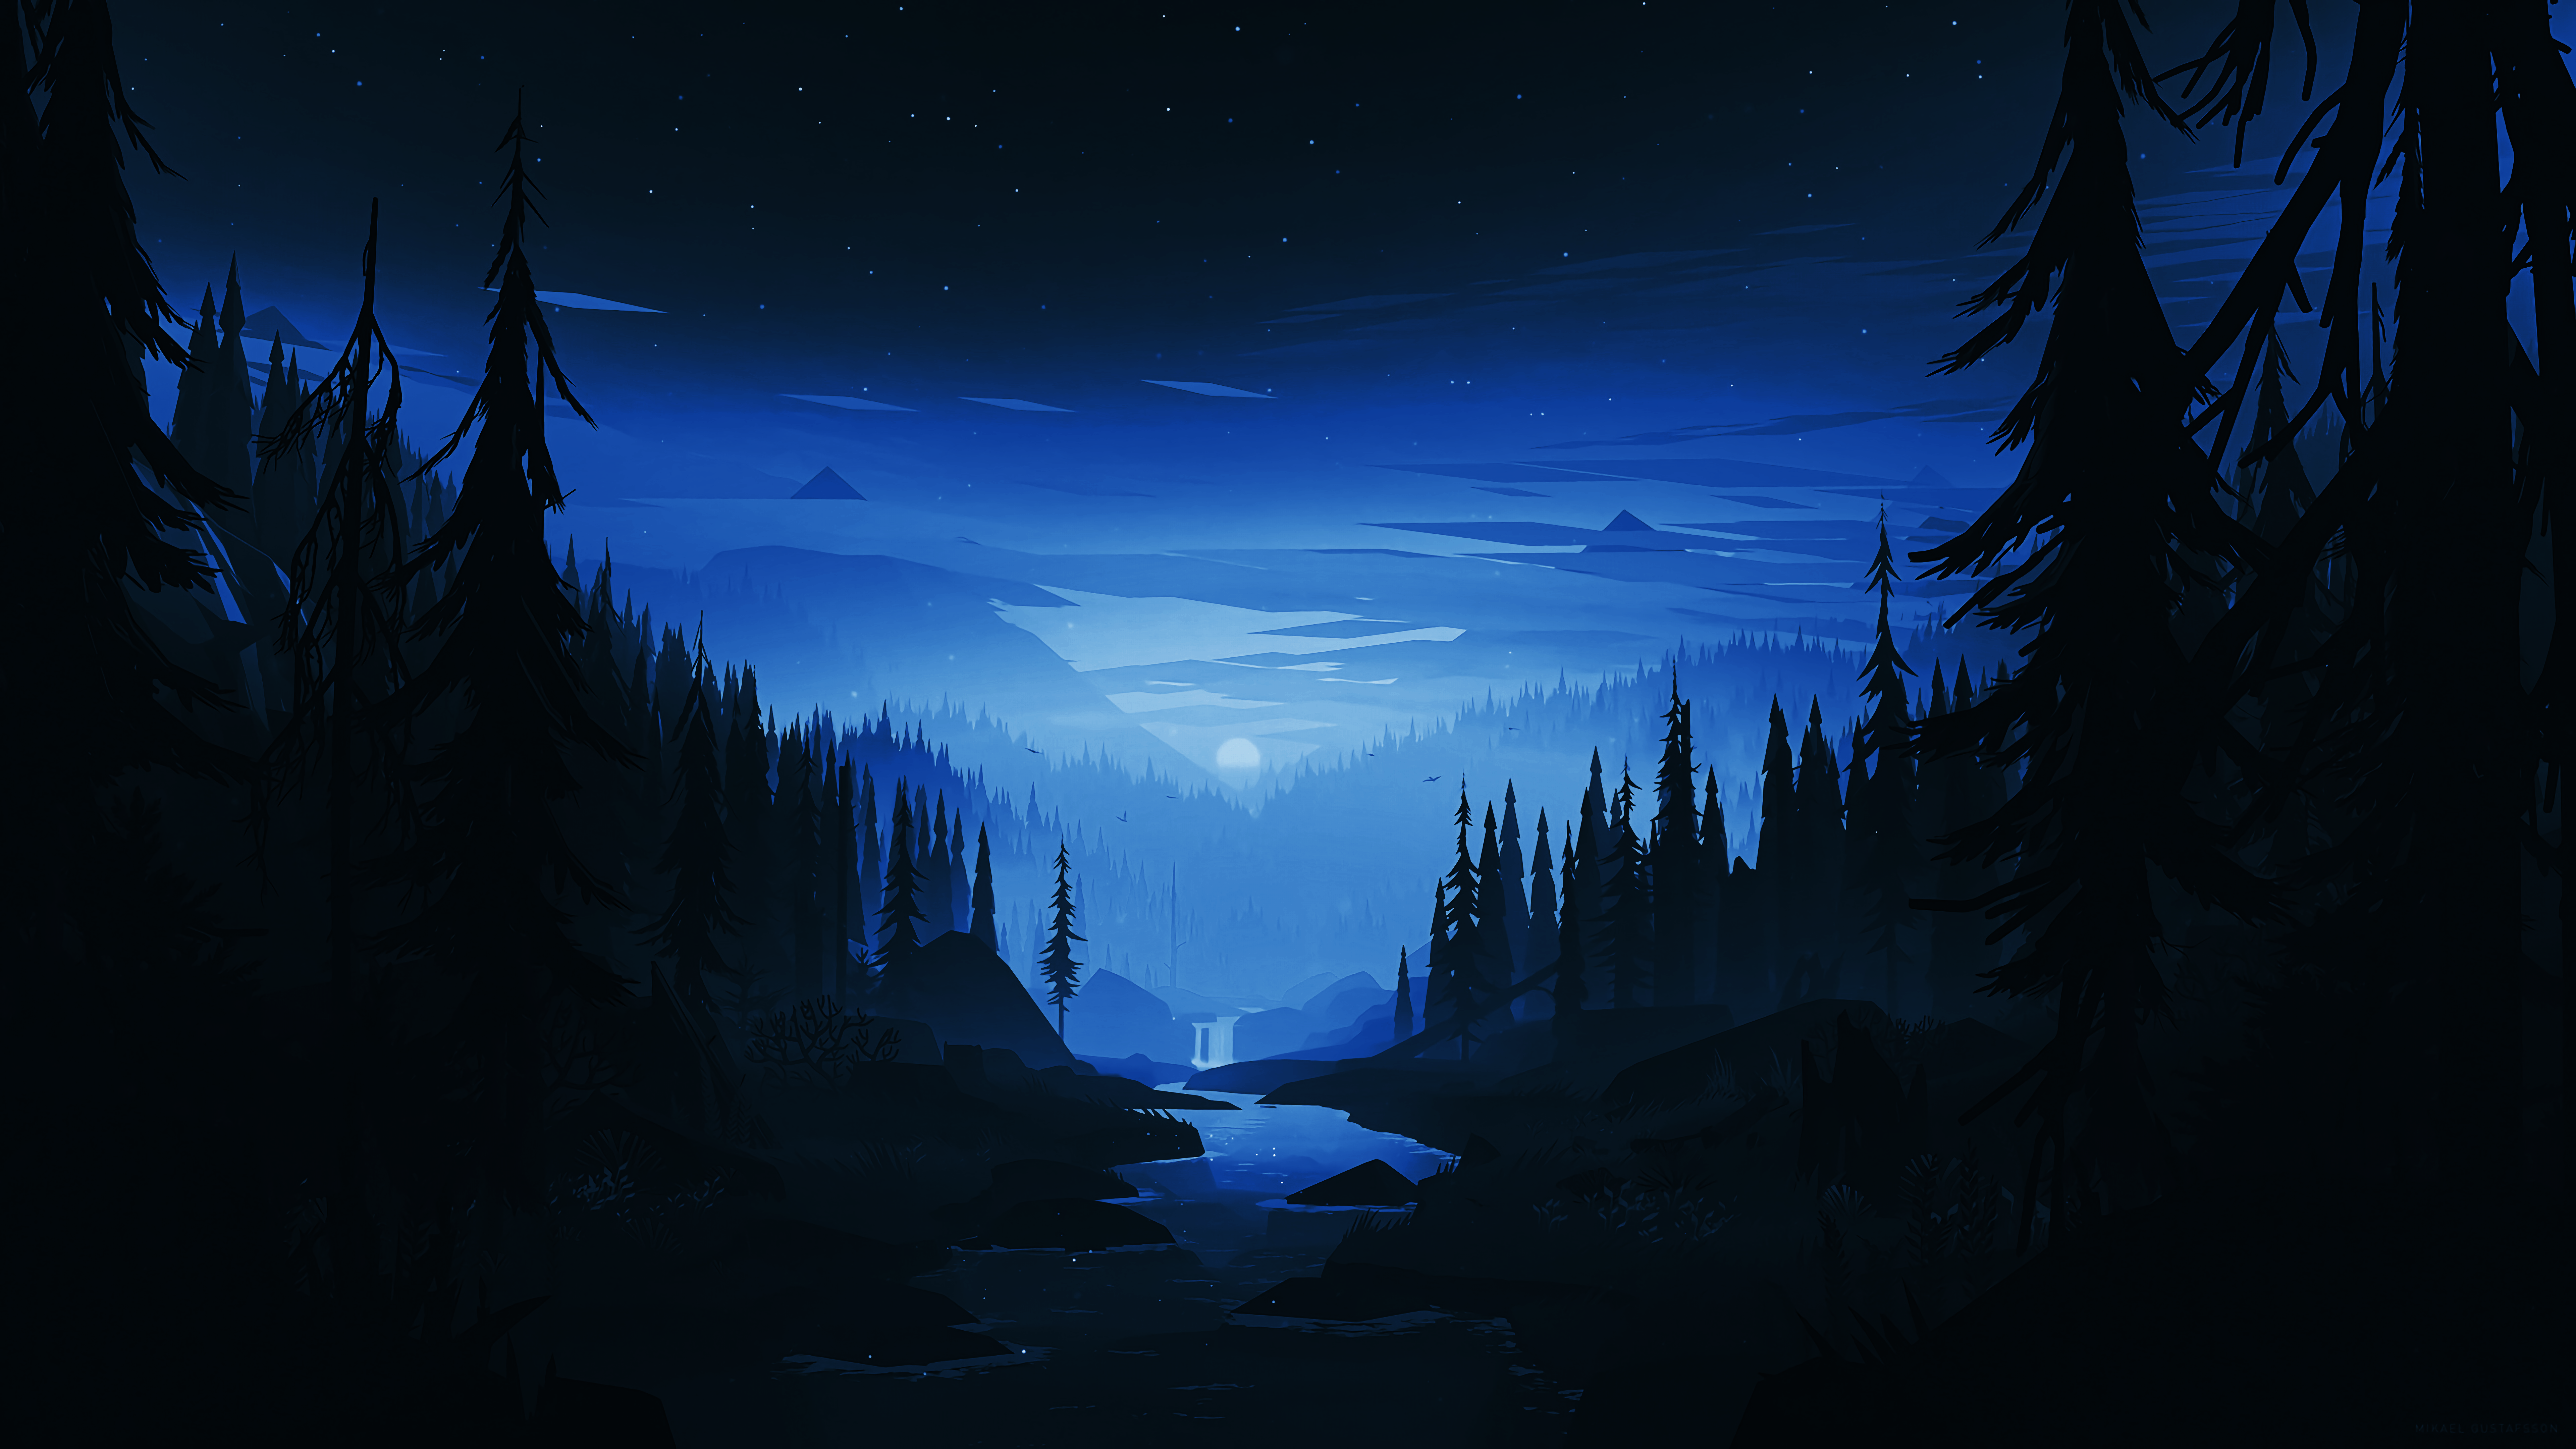 7680x4320 Wallpapers